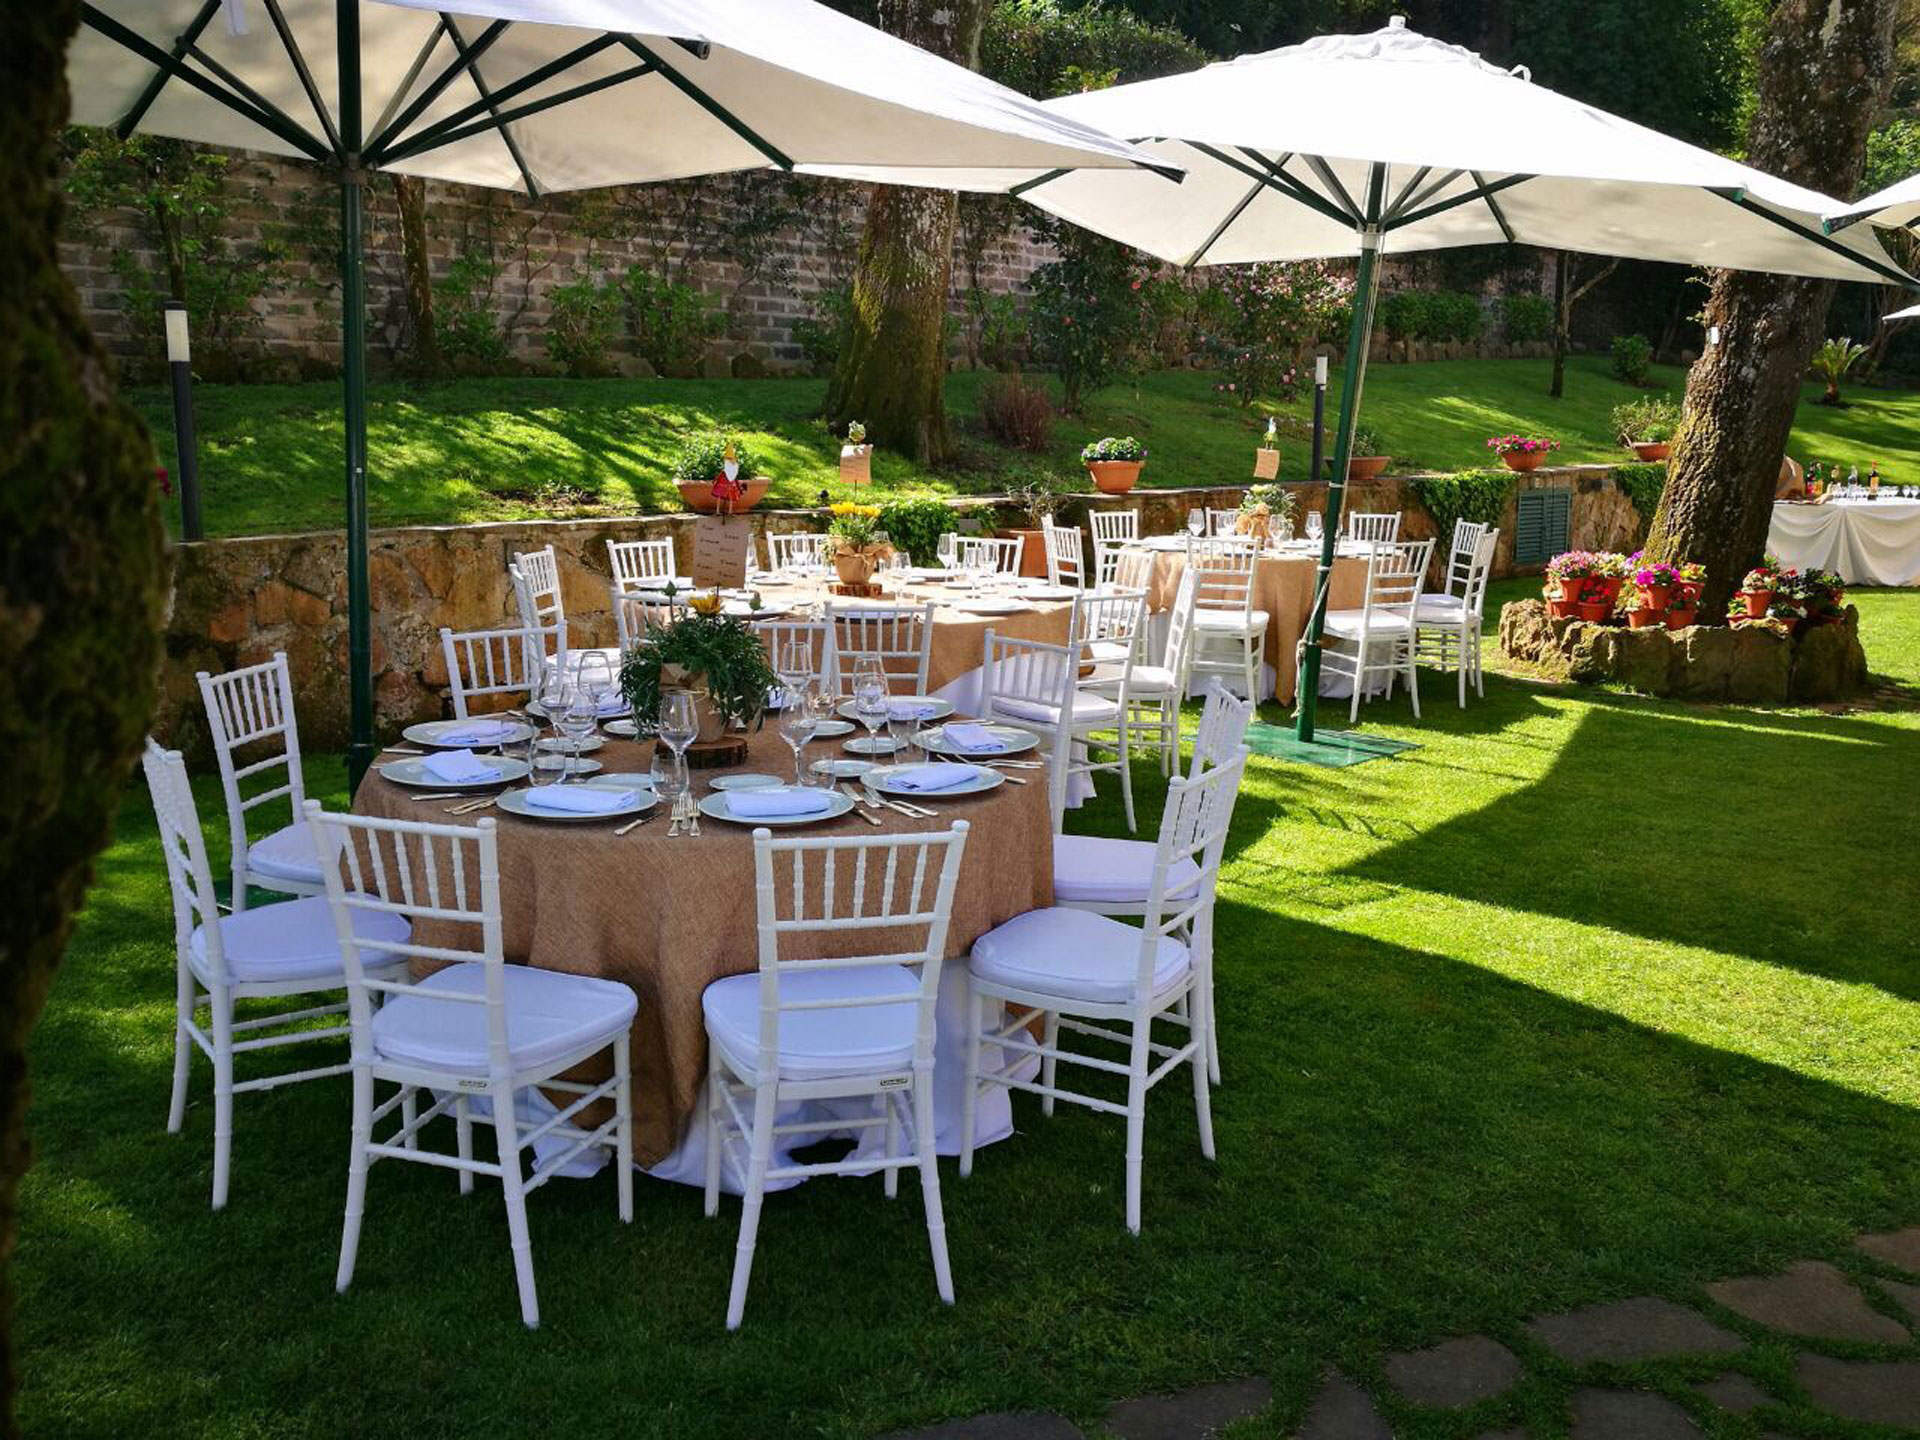 Matrimonio Country Chic Location Roma : Matrimonio country roma maan catering banqueting frascati